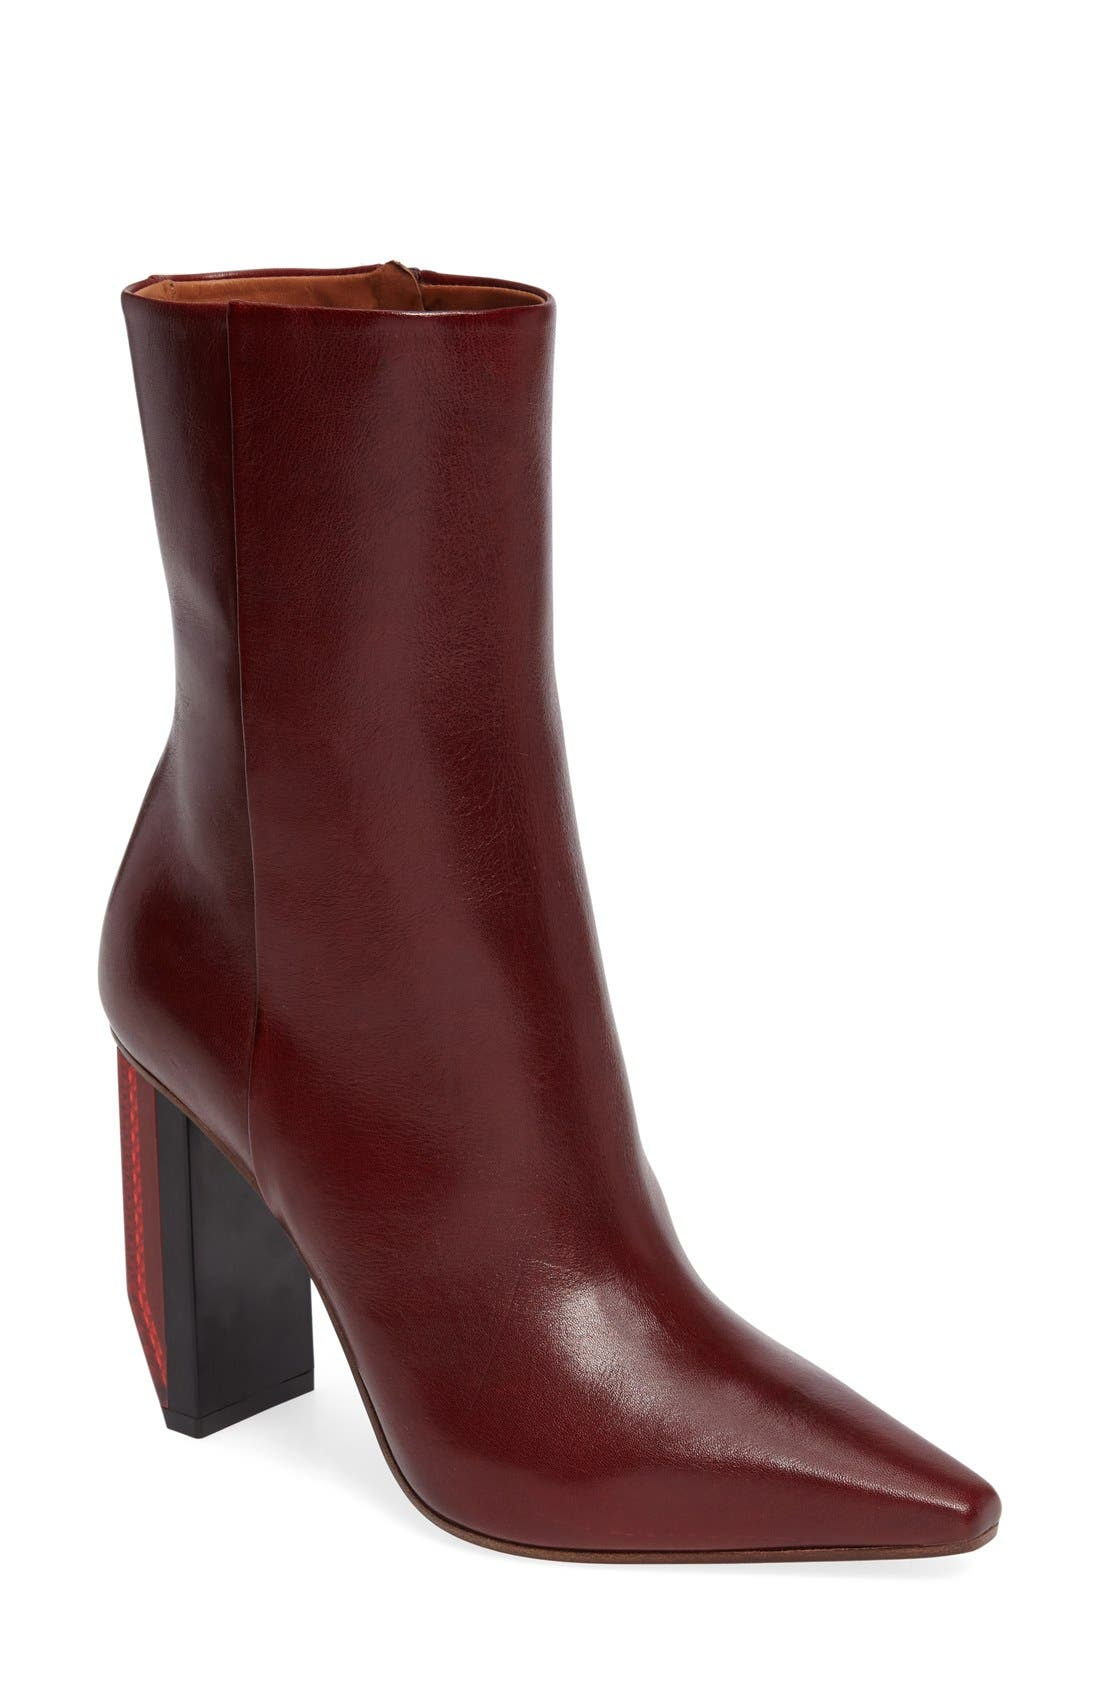 Reflector Heel Ankle Boot,                         Main,                         color, 930